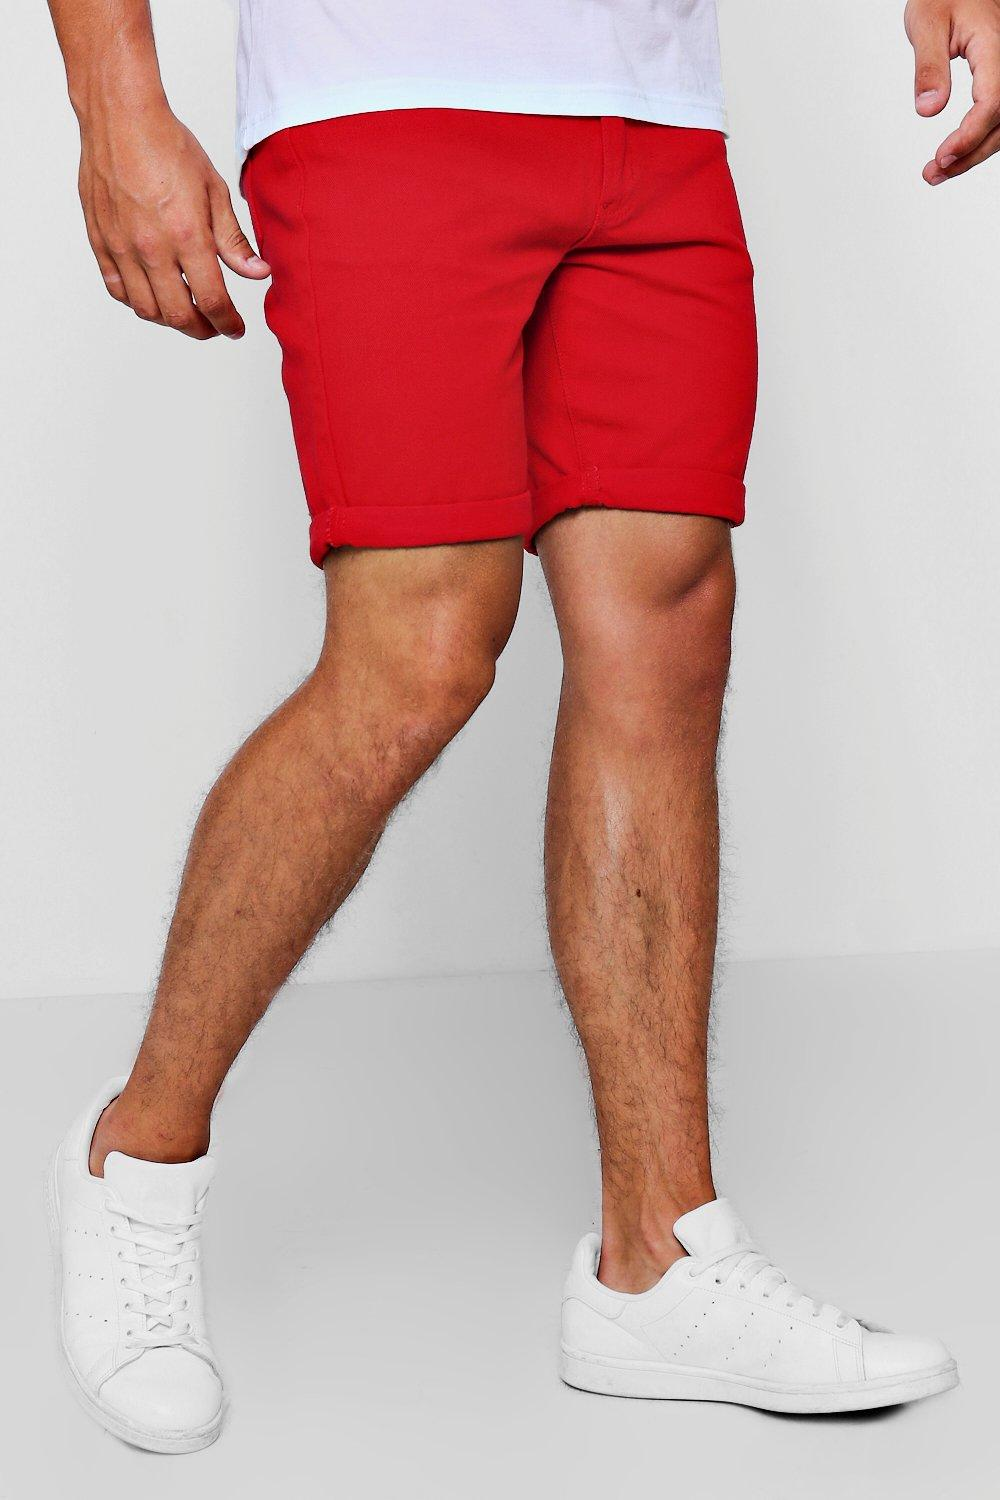 fit rojo Short rojos slim en denim Xq114xT